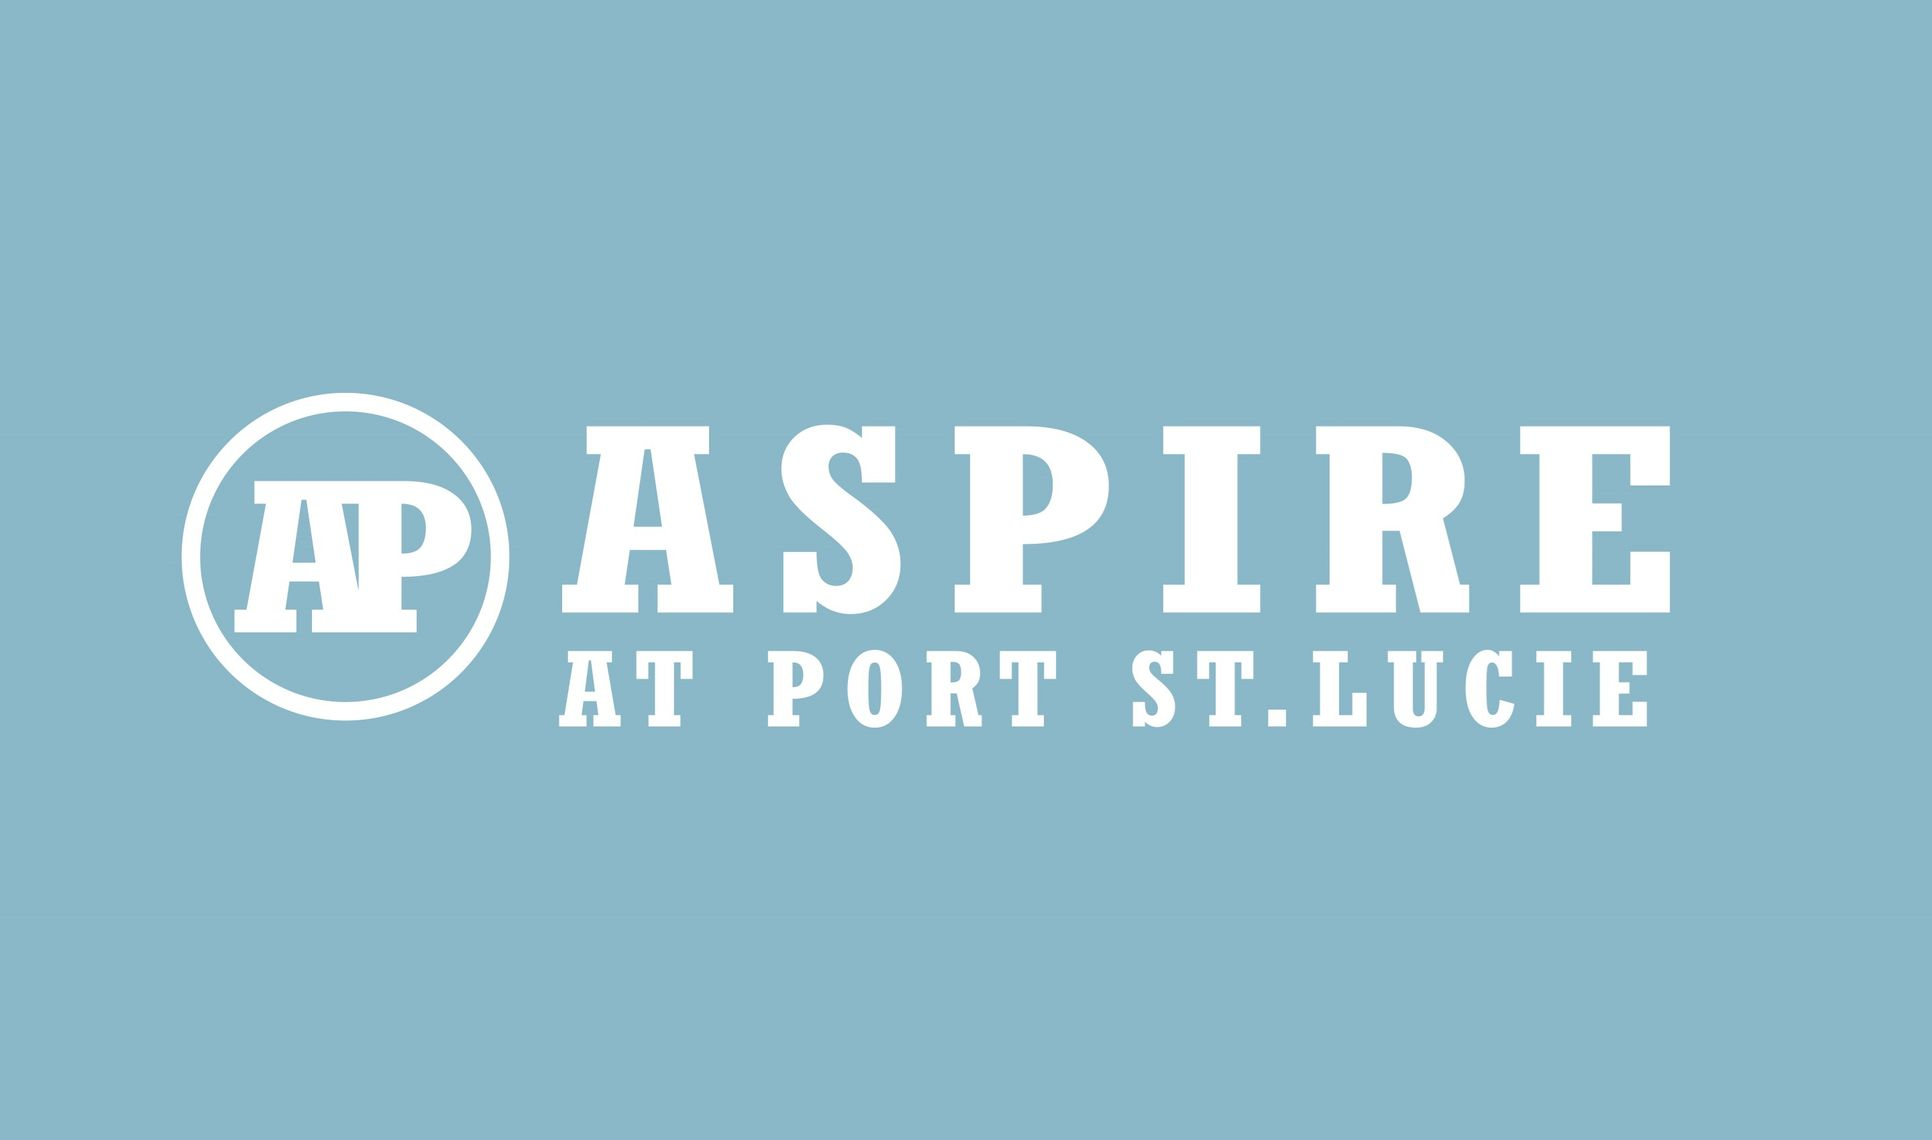 Aspire at Port St Lucie 2880 x 1700 - aspot